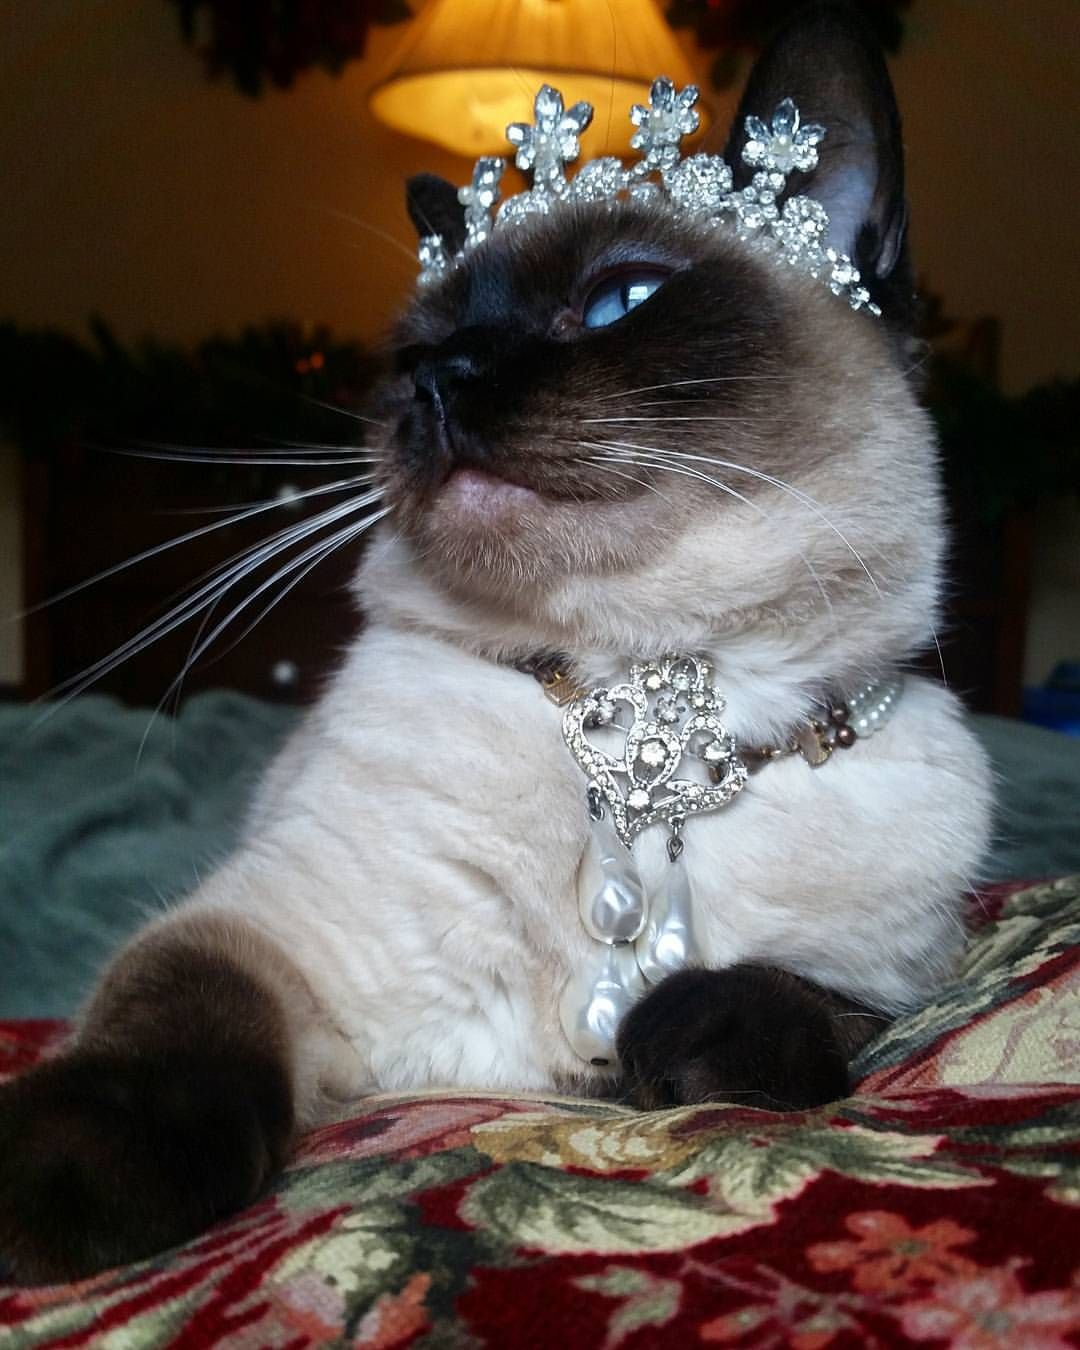 Her Royal Highness strikes a dramatic pose to better show off the impressive pendent that belongs to the Queen Alleria Pearl Parure. #HappyHolidays #ChristmasAtCatsfordia #KittiesOfCatsfordia...